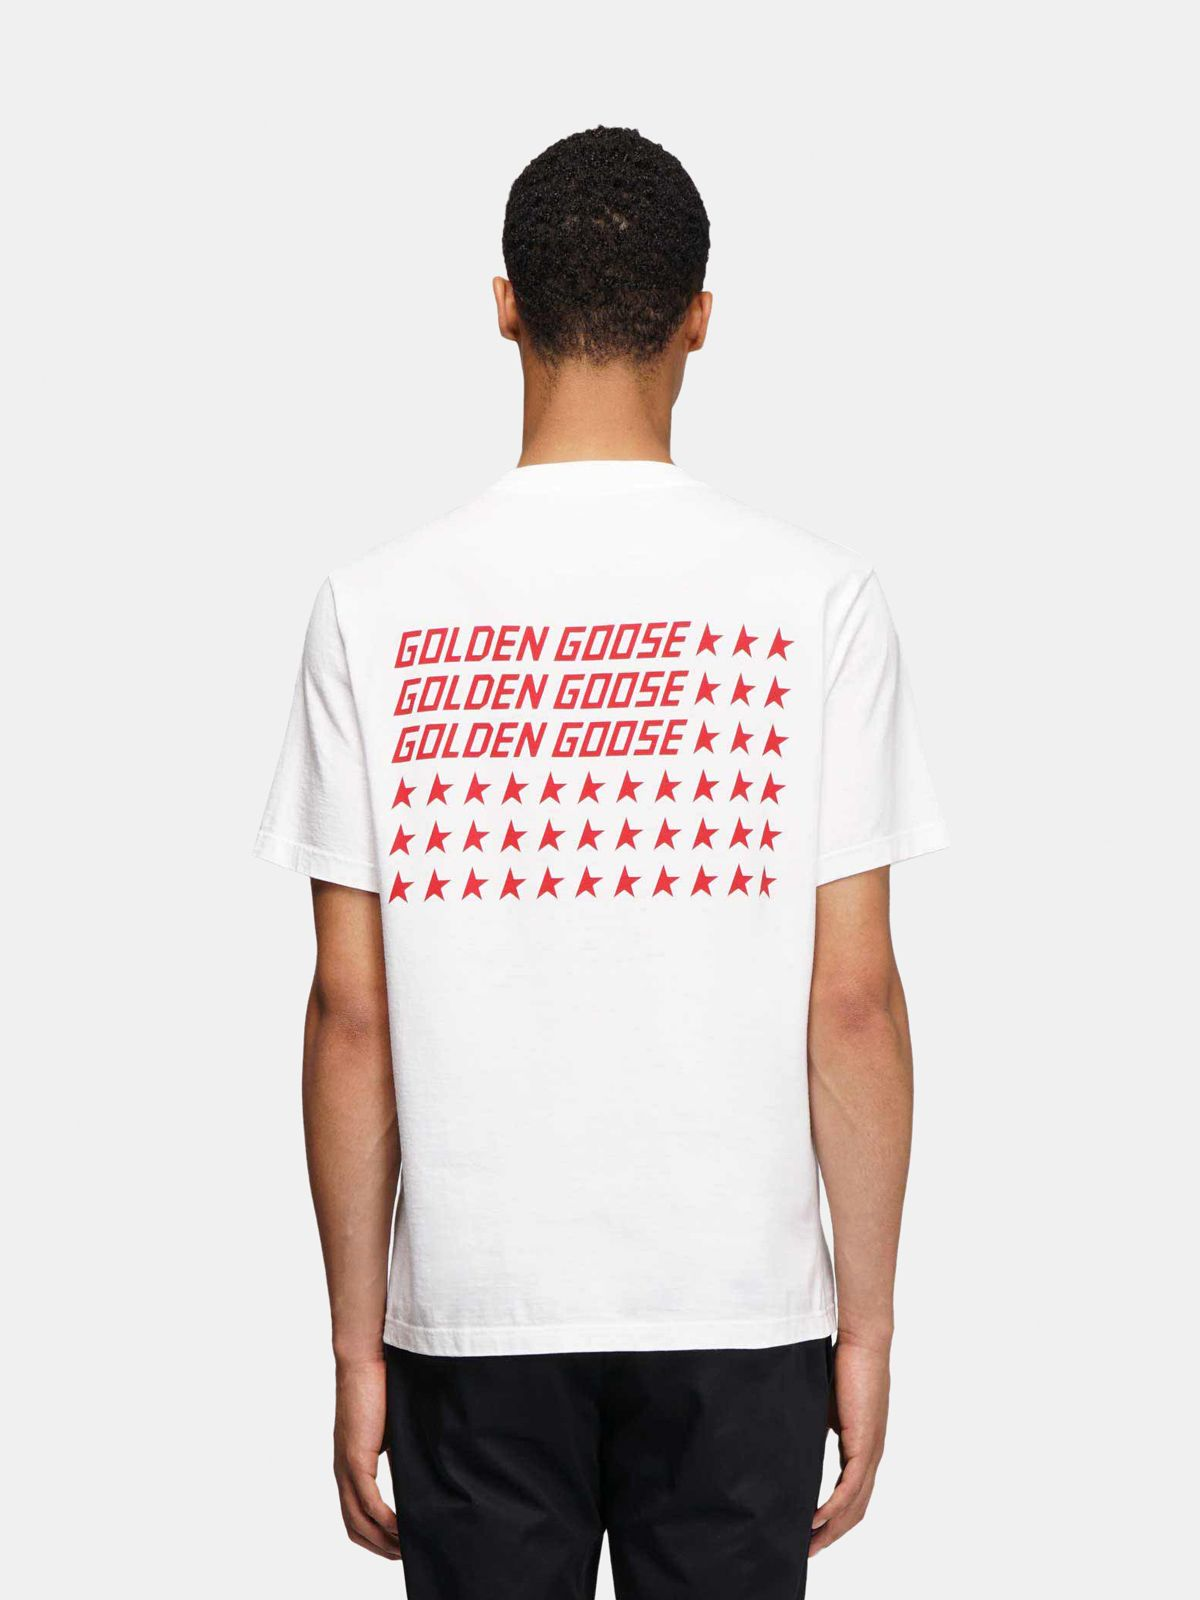 Golden Goose - T-shirt Golden bianca con stampa flag rossa sul retro in